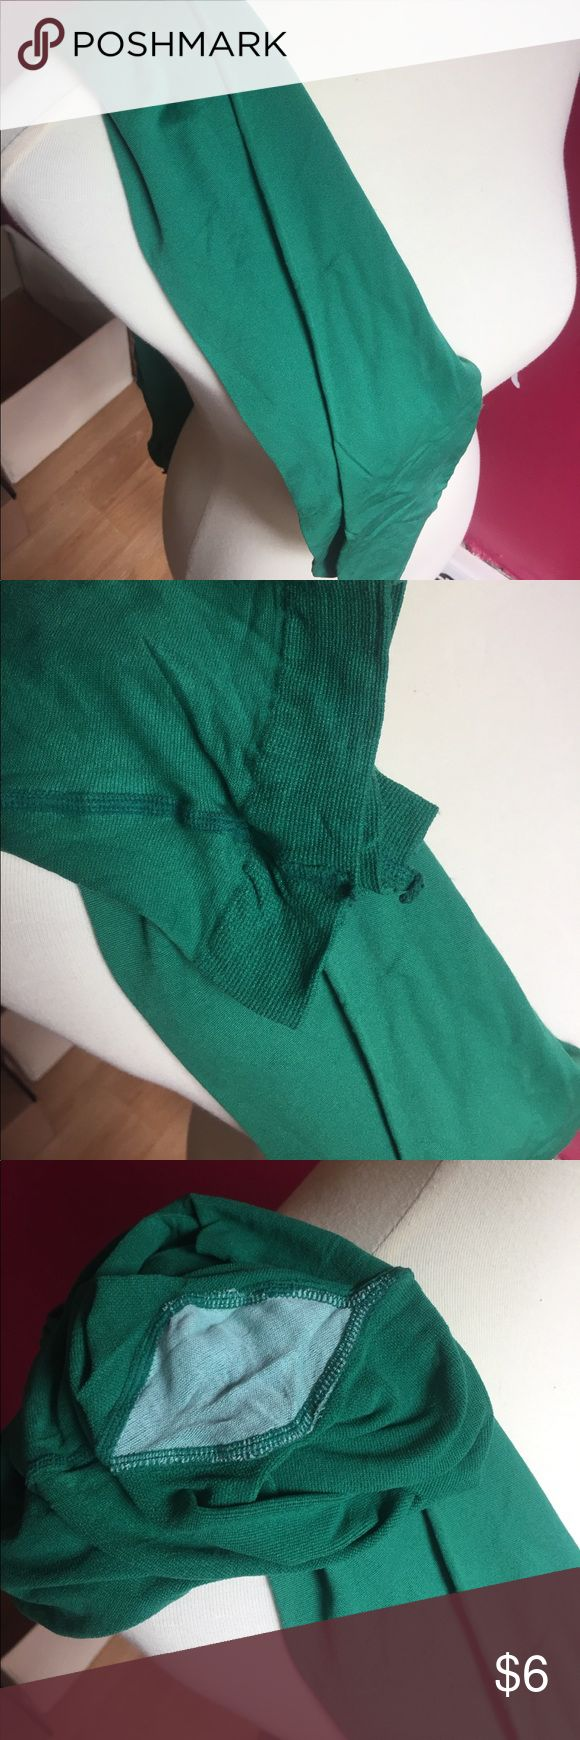 Kelly green tights NEVER WORN OBVIOUSLY How many days till St. Pattys?!? Prepare yourself with some bright green tights. These have never been worn or tried on because I'm not as brave as you are! Accessories Hosiery & Socks